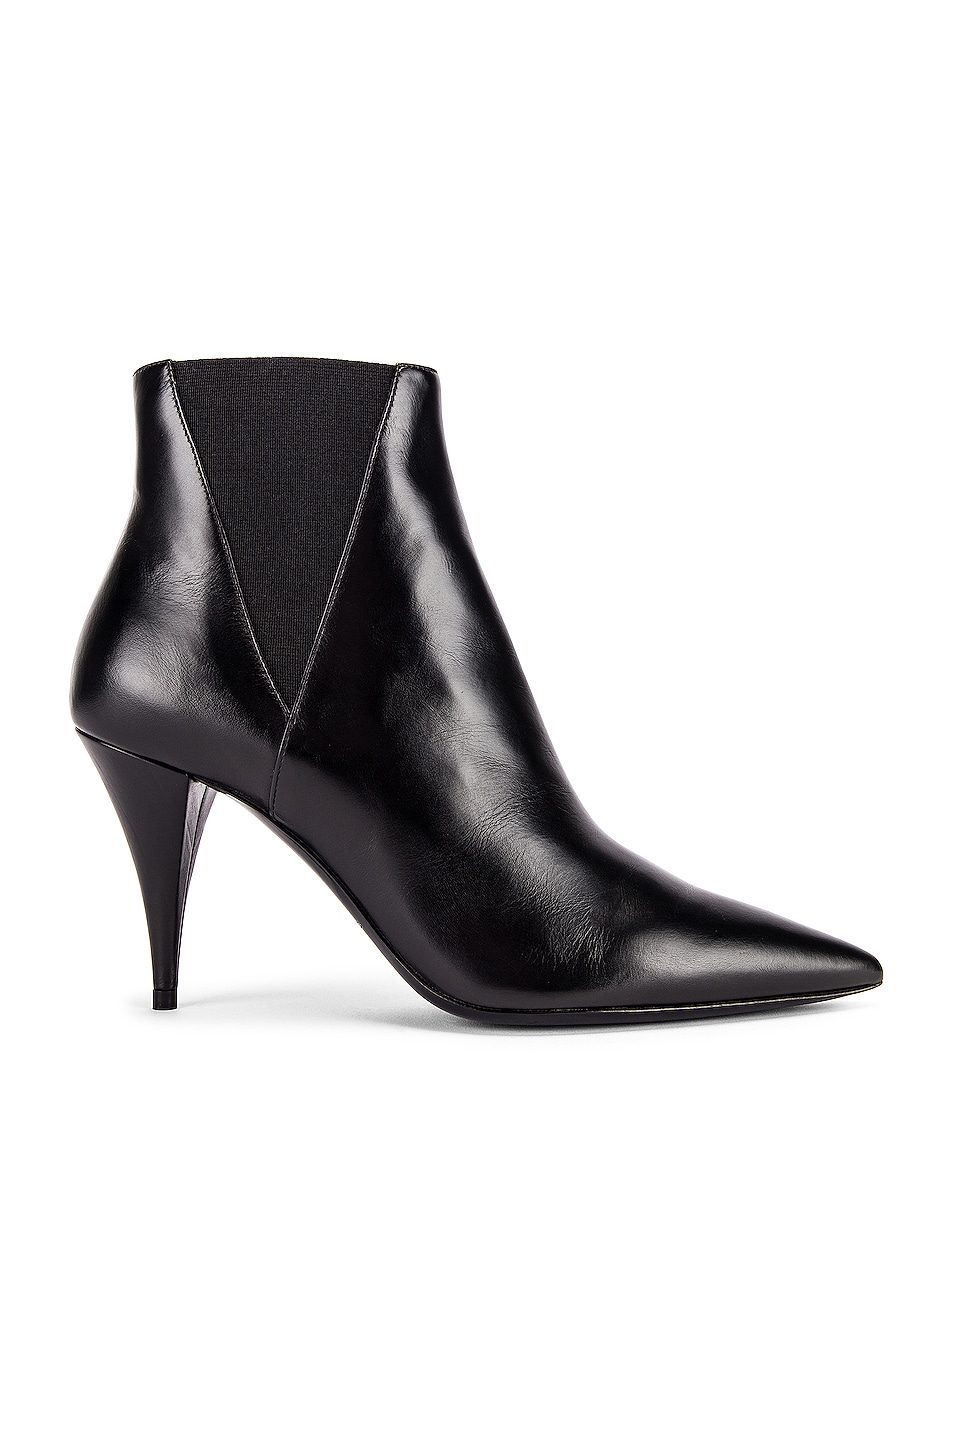 Image 1 of Saint Laurent Kiki Chelsea Booties in Black